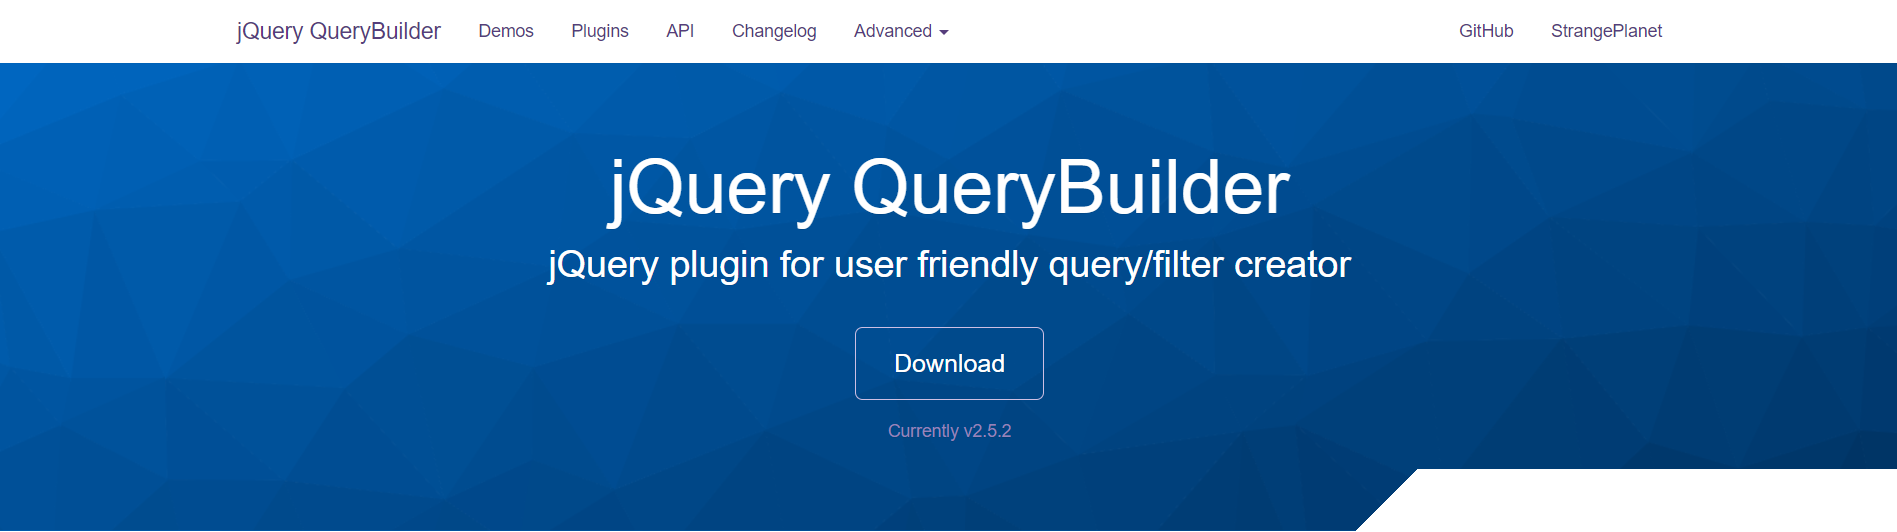 Top 6 UI Widgets for Business Web Applications- Query Builder